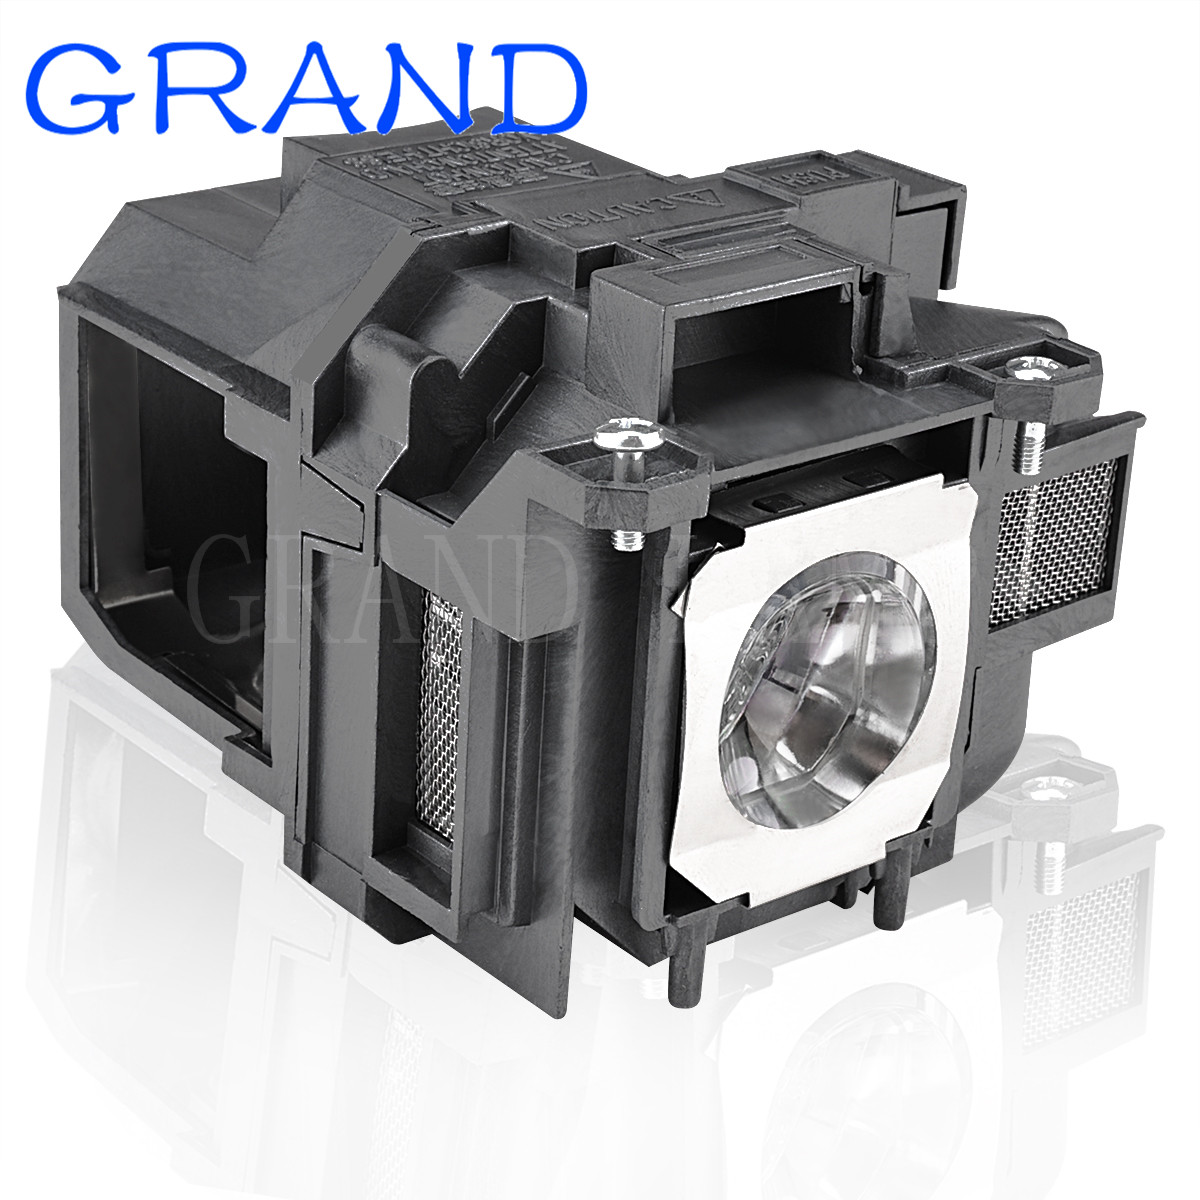 ELPLP88 V13H010L88 For Lamp Projector Eh-tw5350 Eh-tw5300 EB-S27 EB-X31 EB-W29 EB-X04 EB-X27 EB-X29 EB-X31 EB-X36 EX3240